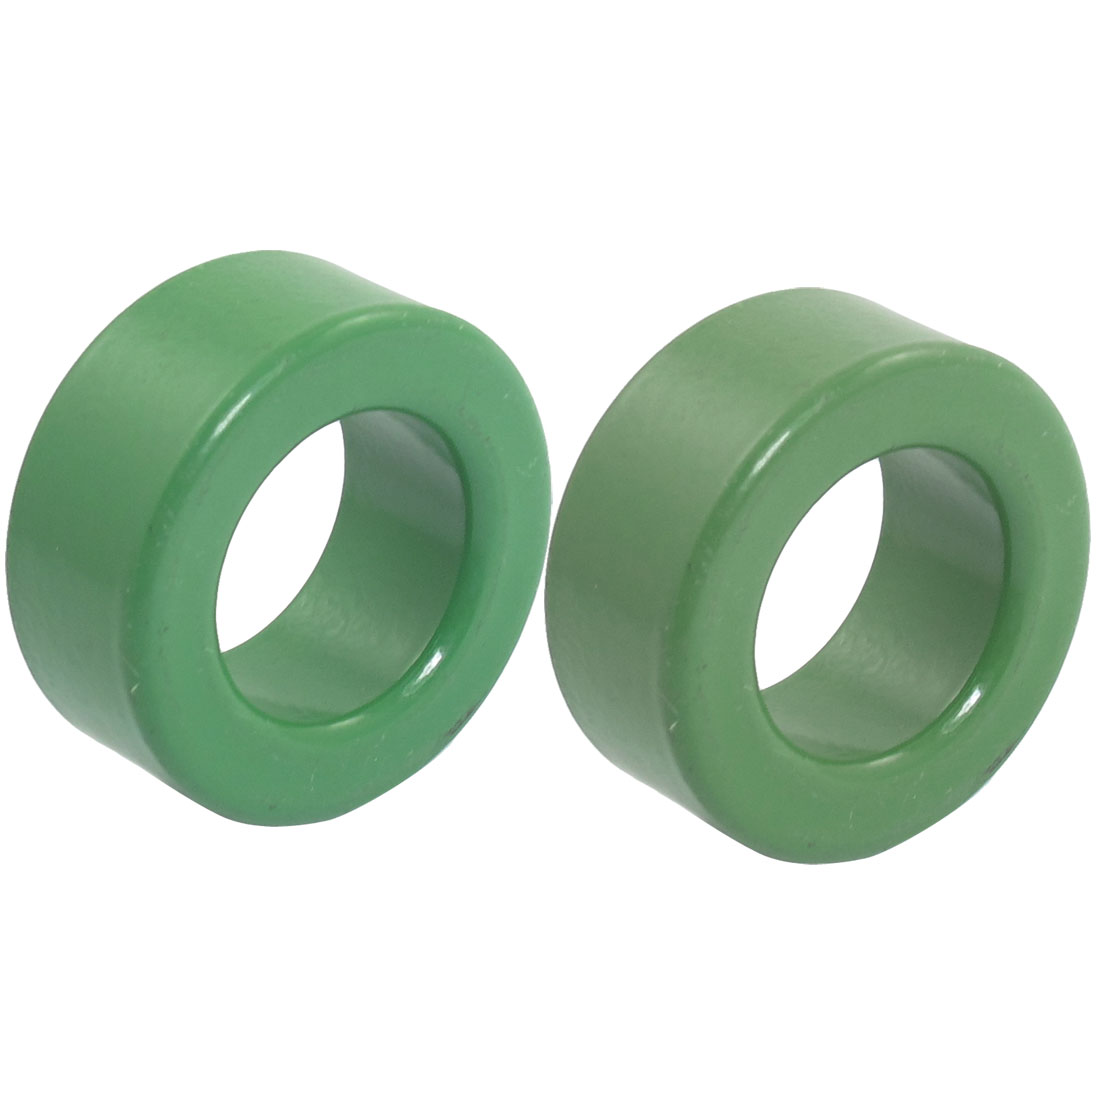 UXCELL 2 Pieces Green Iron Toroid Ferrite Core 31 x 19 x 13mm/ 1.2 x 0.7 x 0.5 Used widely in Inductors, Chokes, Ballasts transformers ferrite toroid cores green 74mm x 39mm x 13mm